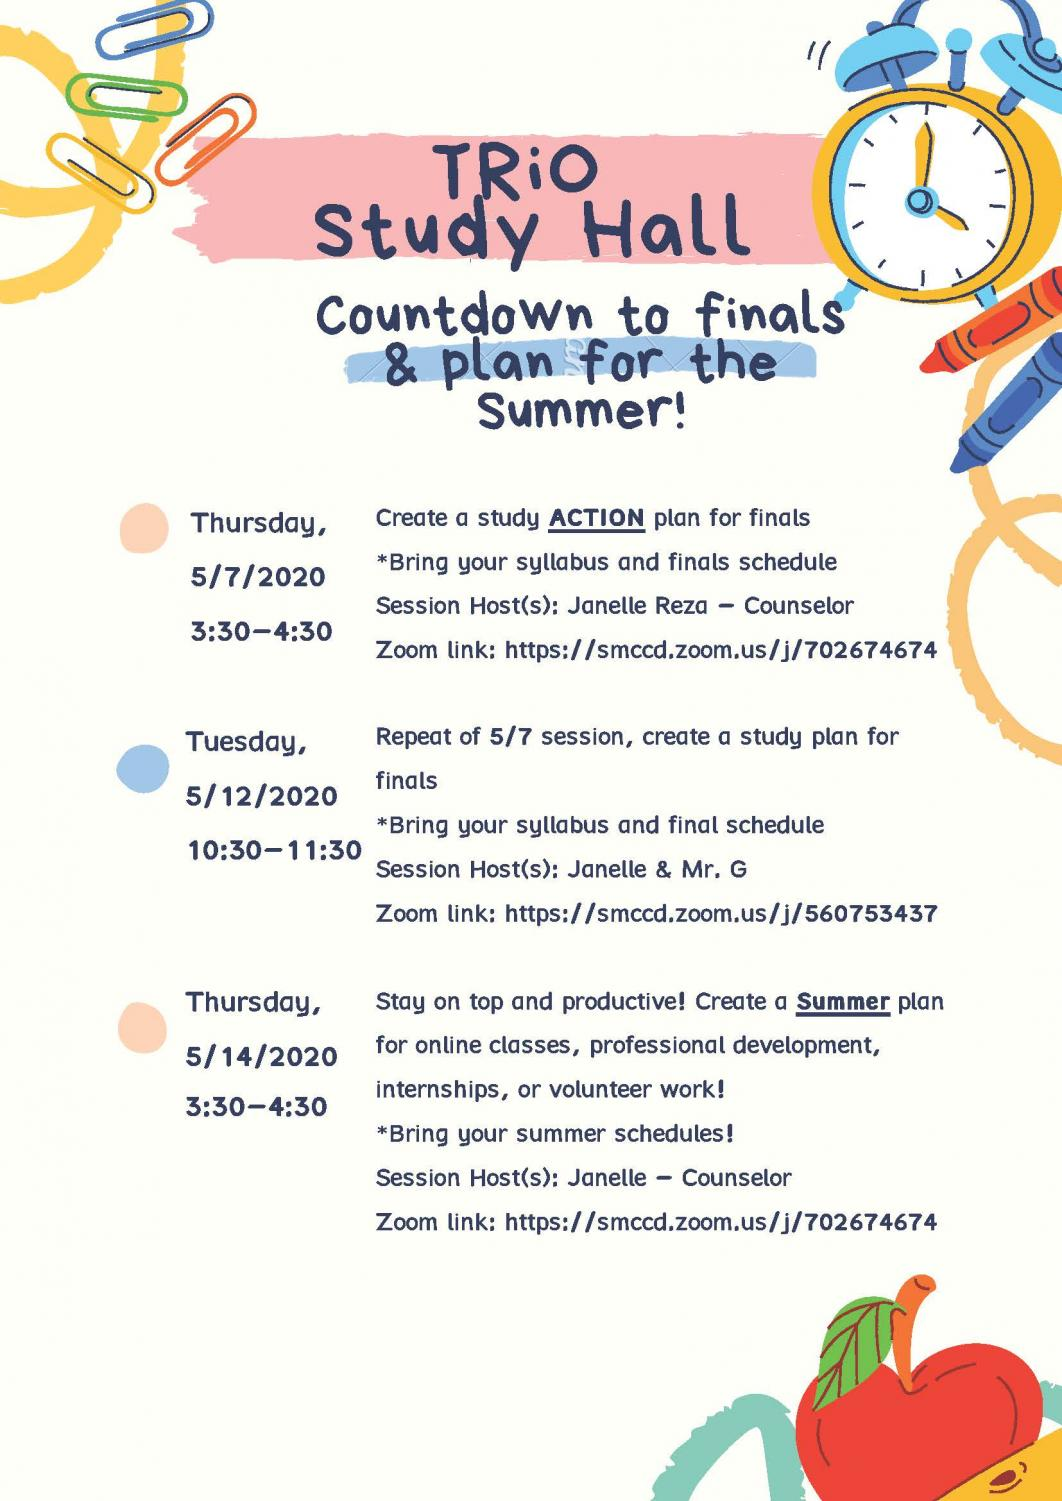 An illustration for Trio Study hall schedule for finals week at Skyline College, May 14, 2020.